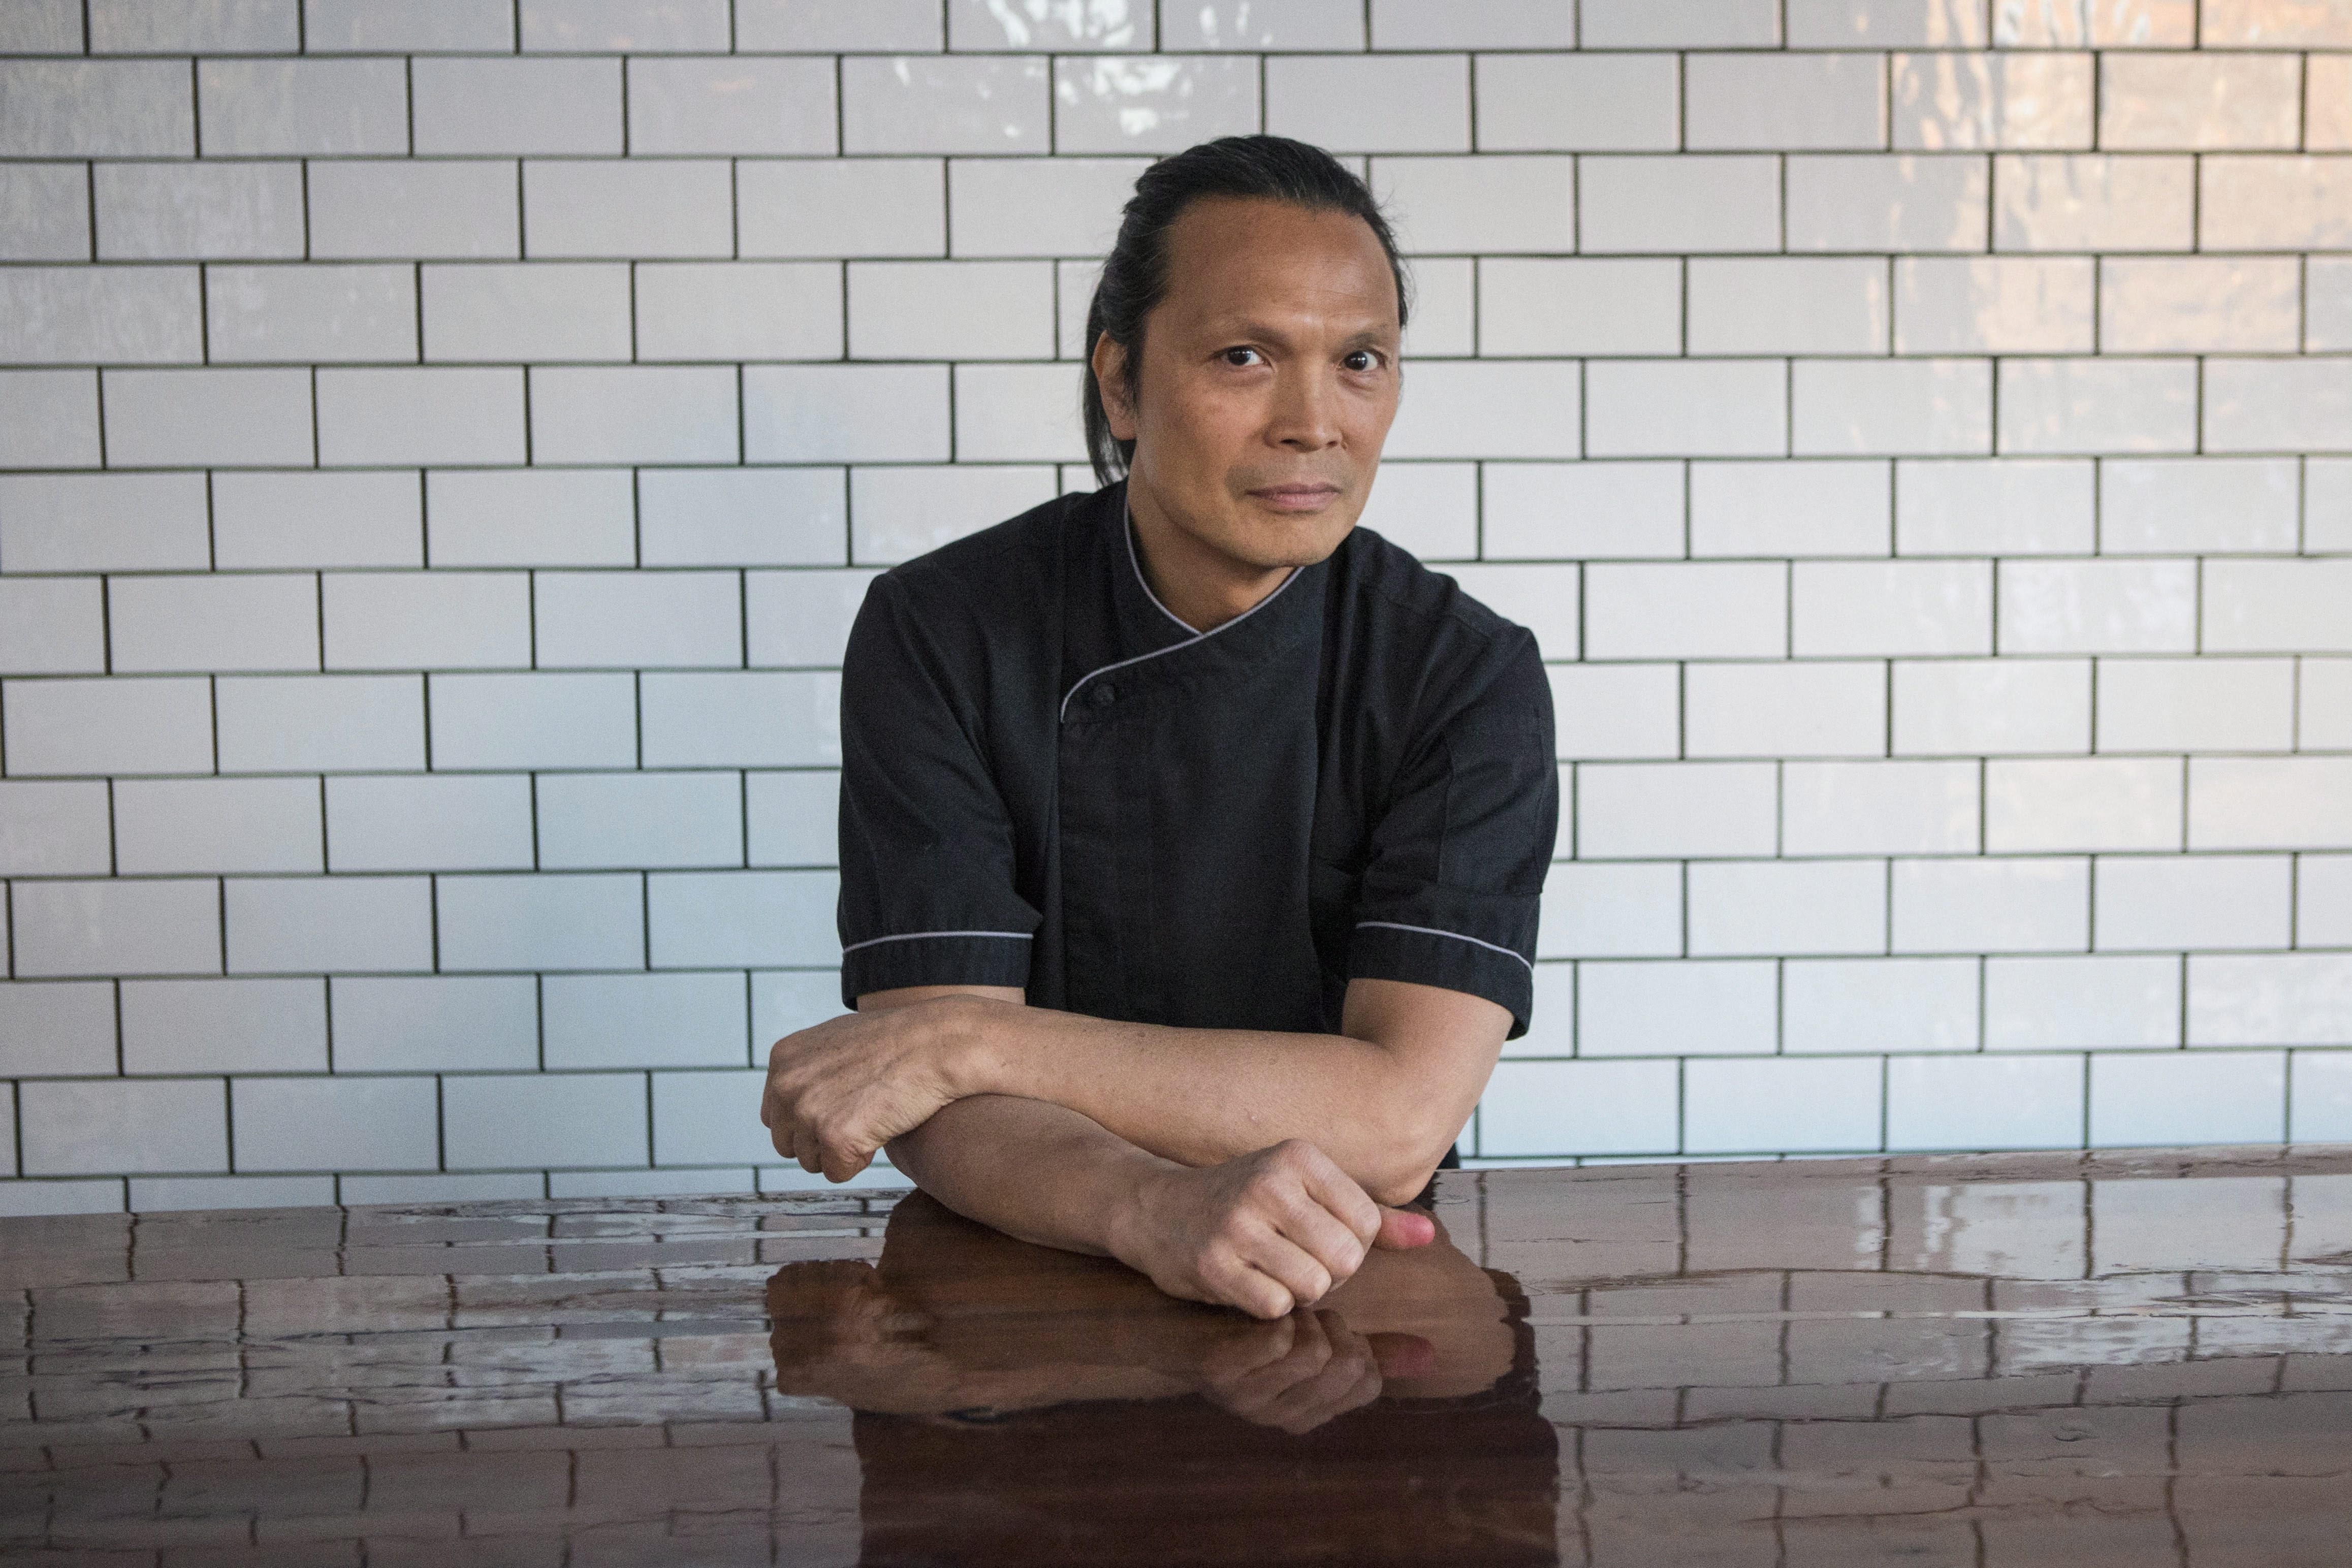 Chef Susur Lee at Bent restaurant in Toronto, 2013.